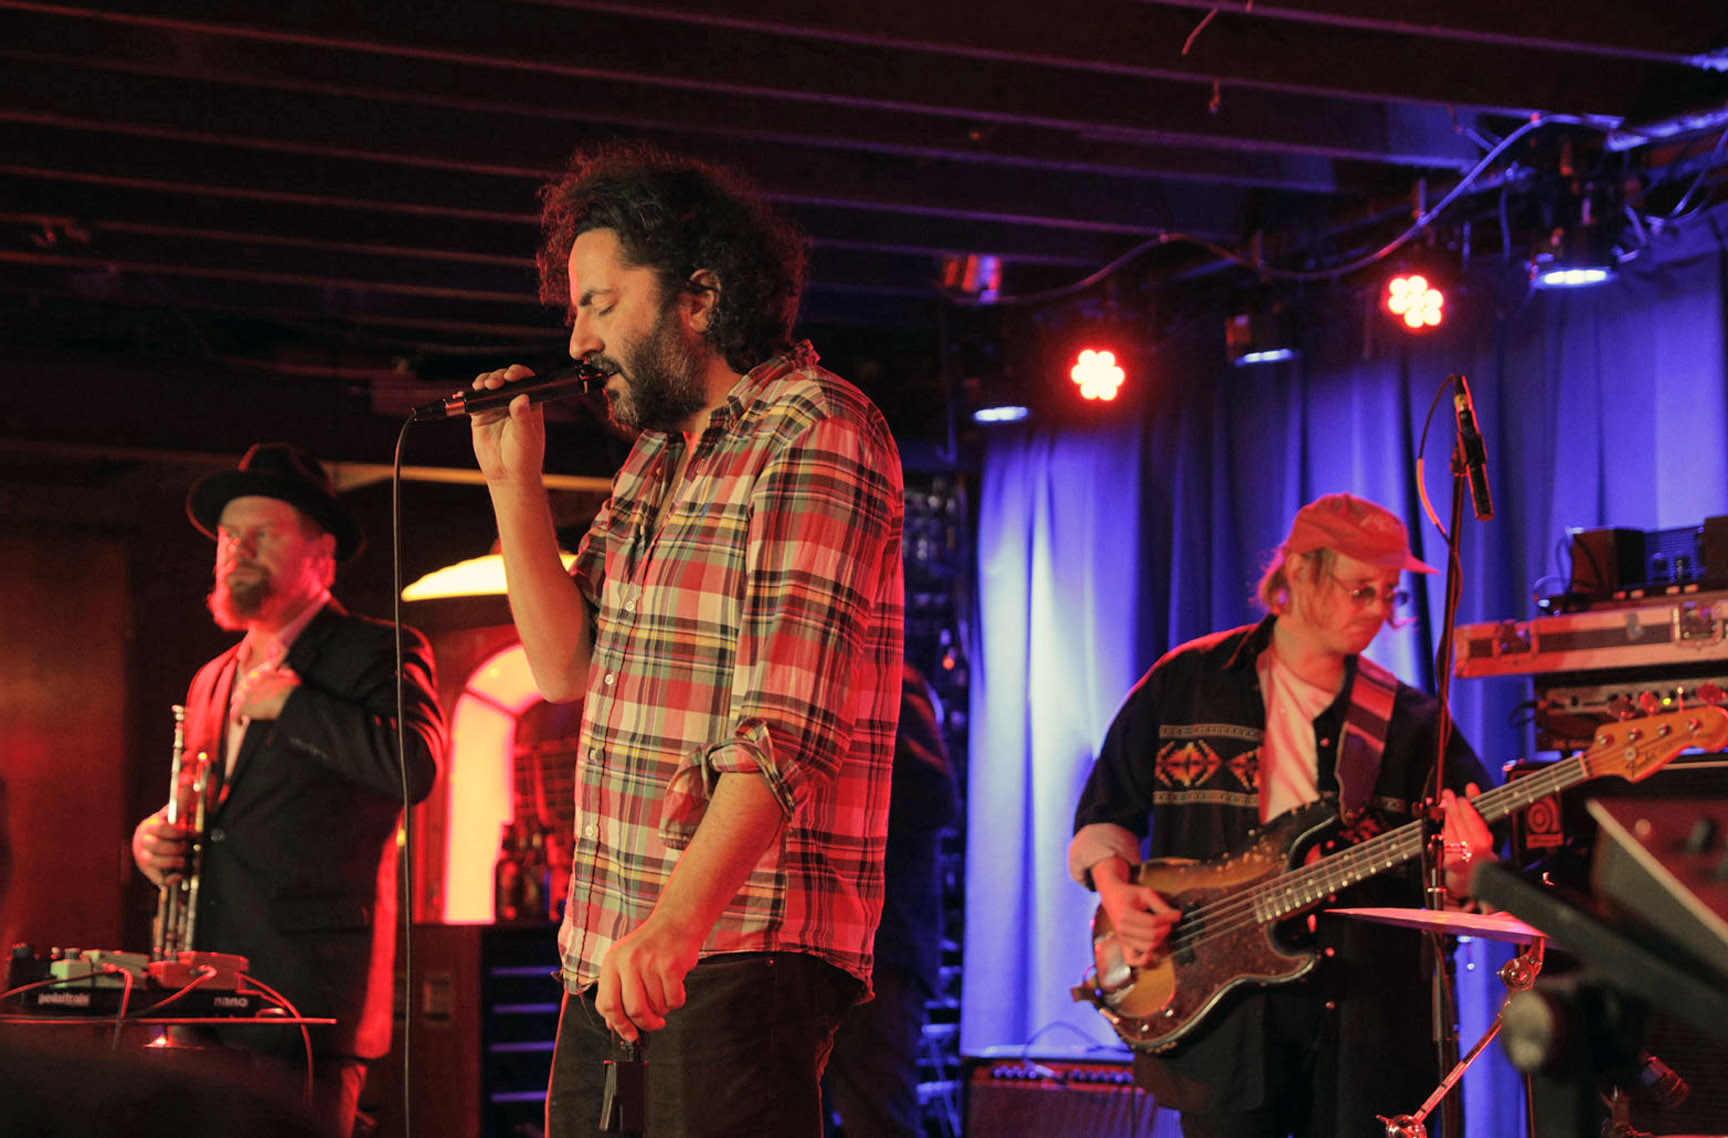 Destroyer, Blueberry Hill, Duck Room